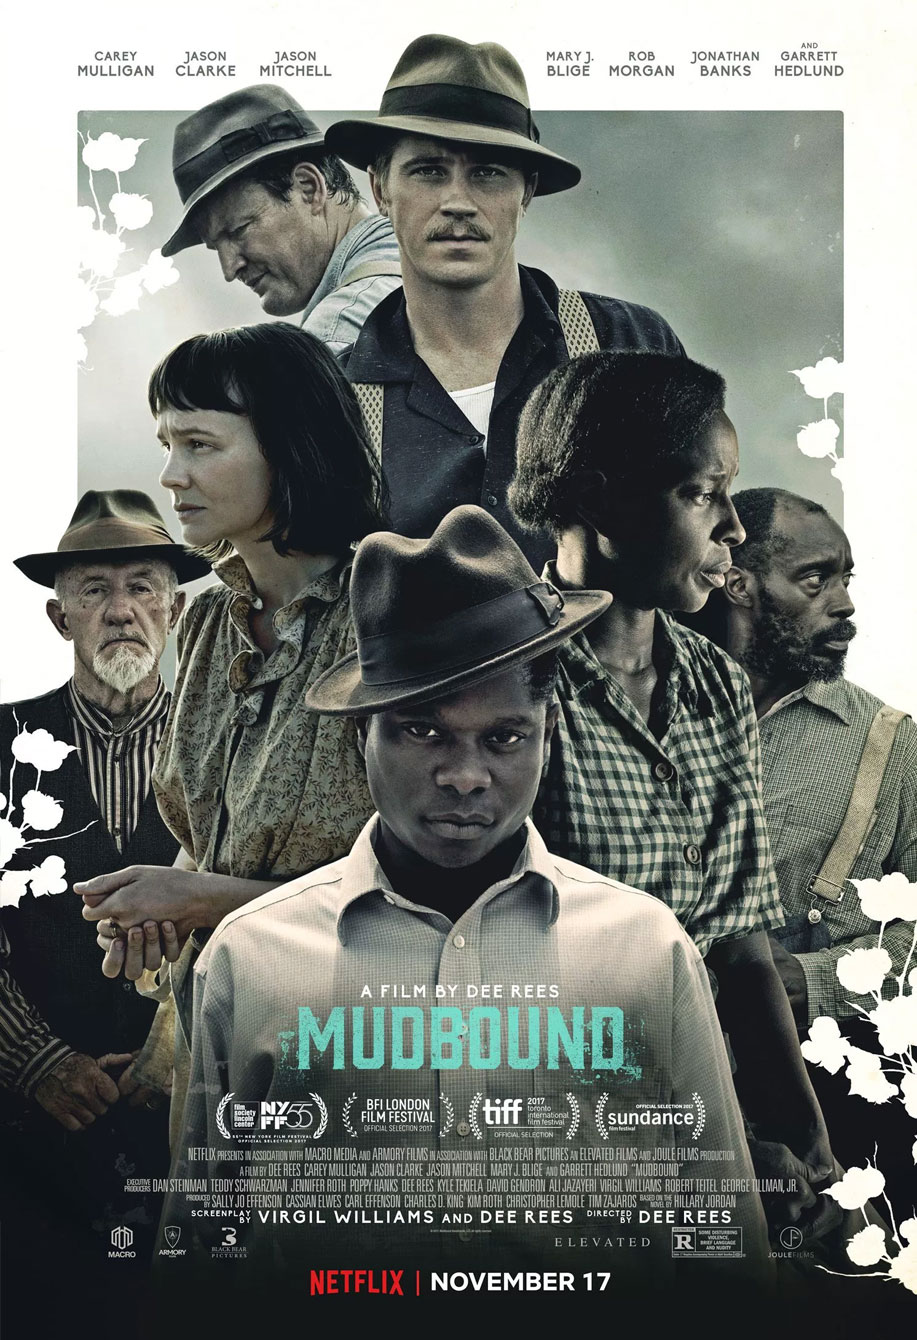 Mudbound, Netflix 2017 - Score Composition, selected cues